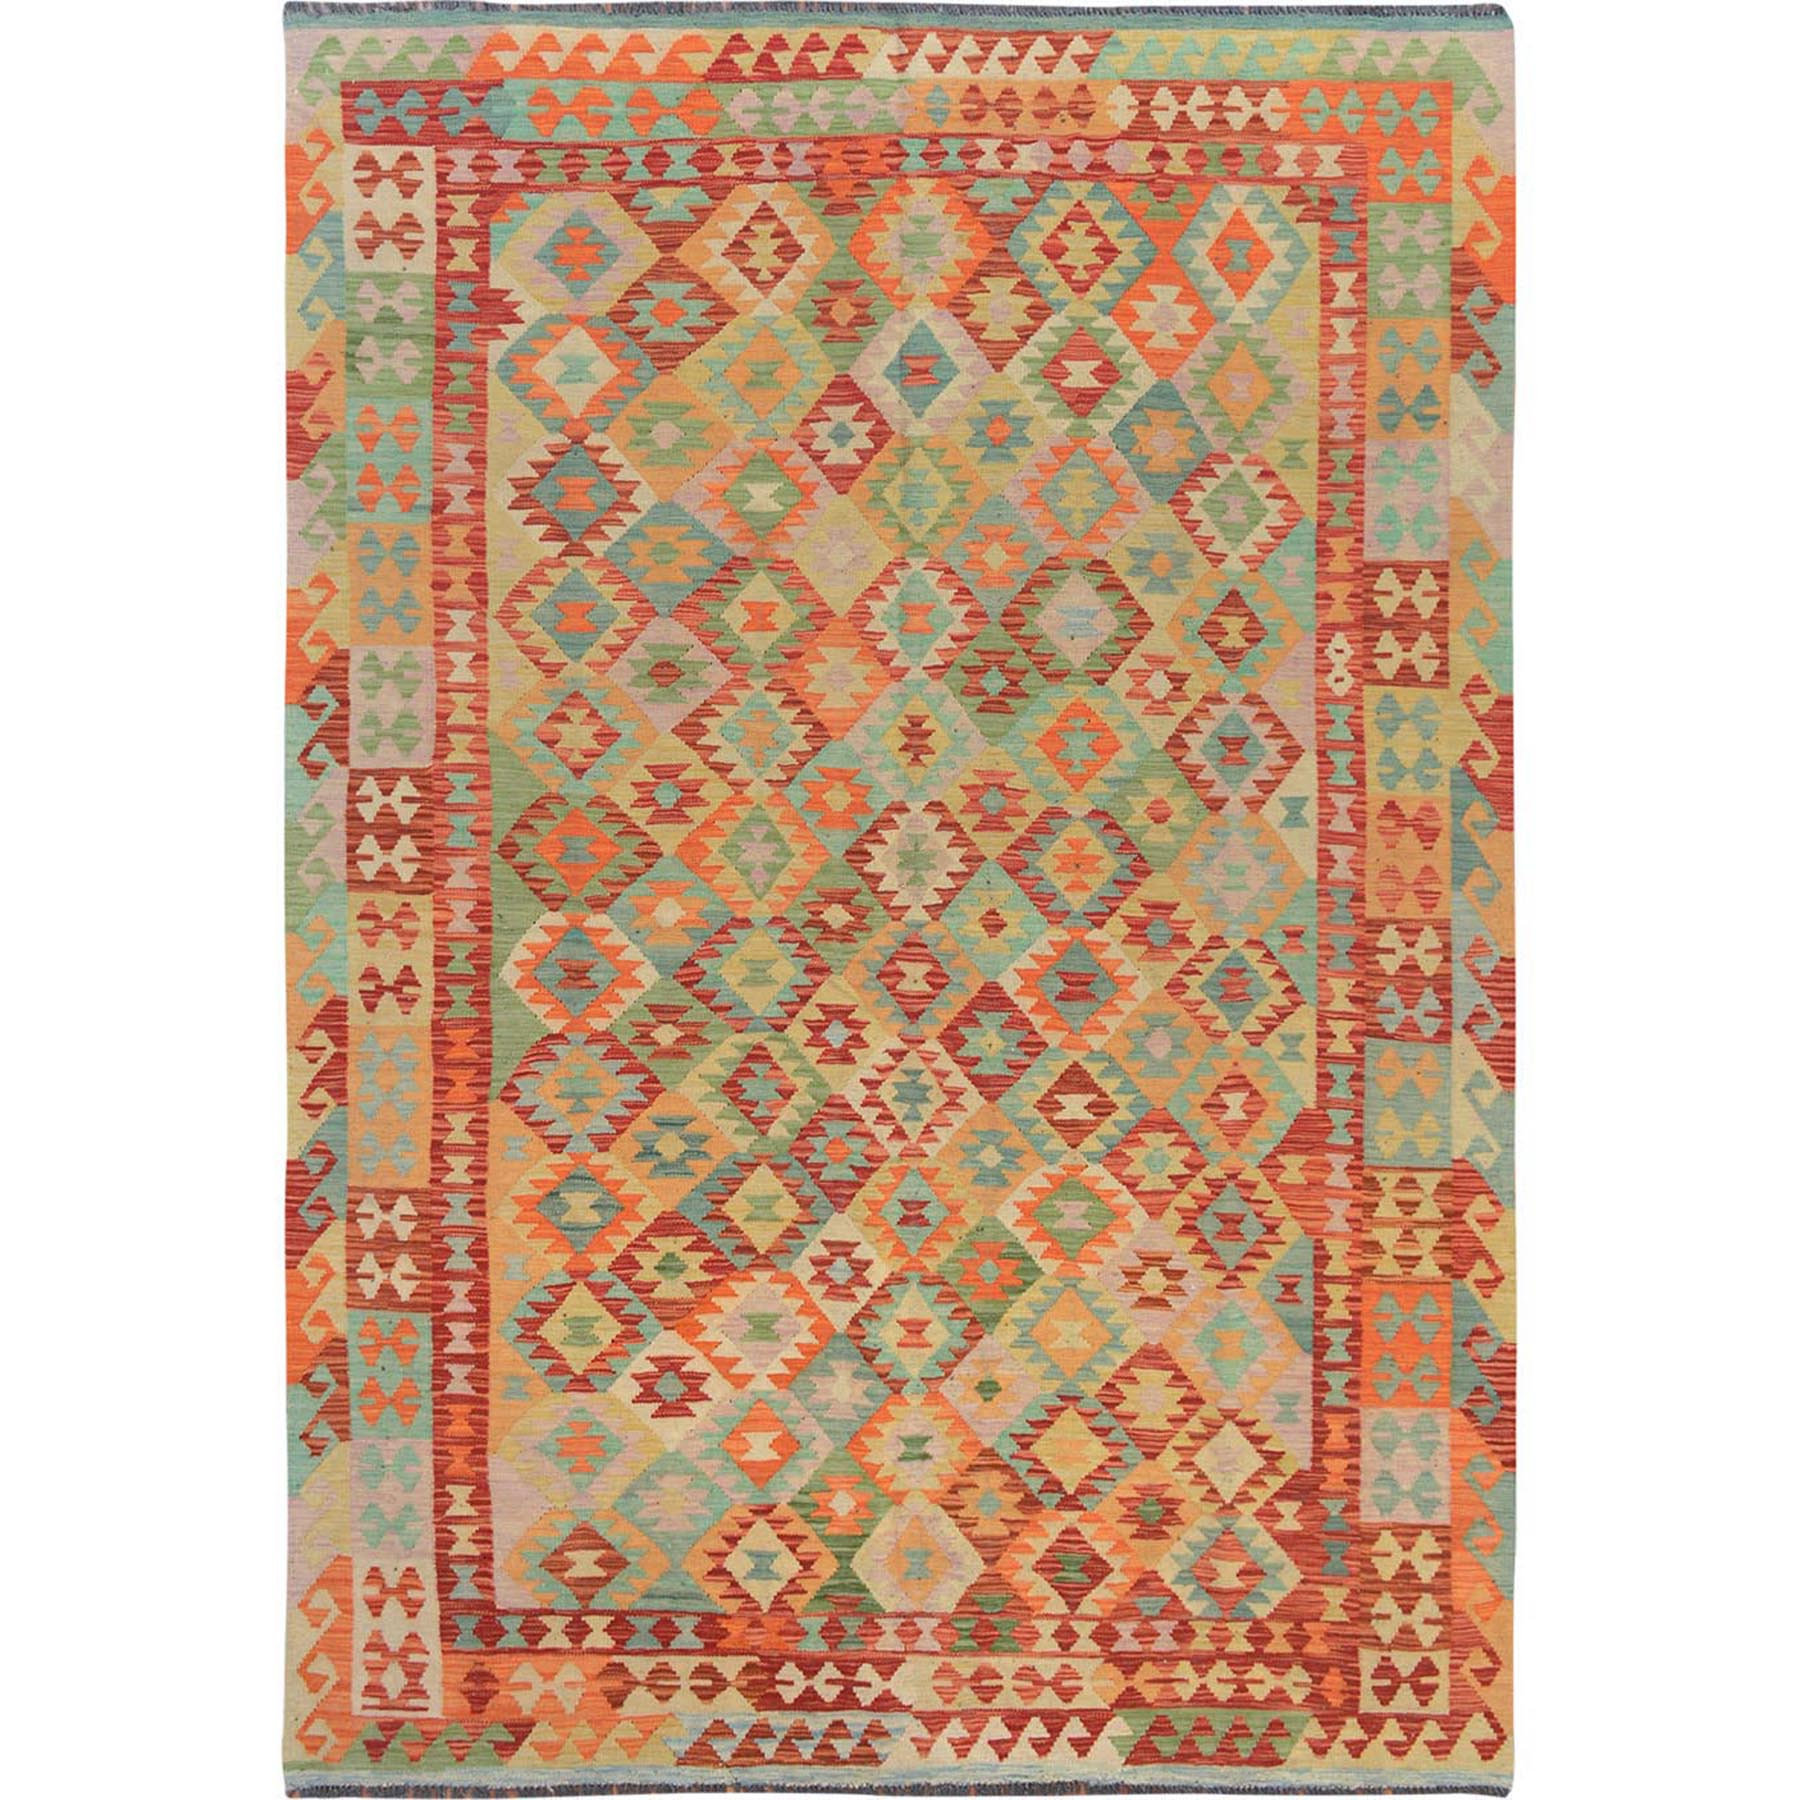 "6'8""x9'7"" Colorful Afghan Reversible Kilim Pure Wool Hand Woven Oriental Rug"